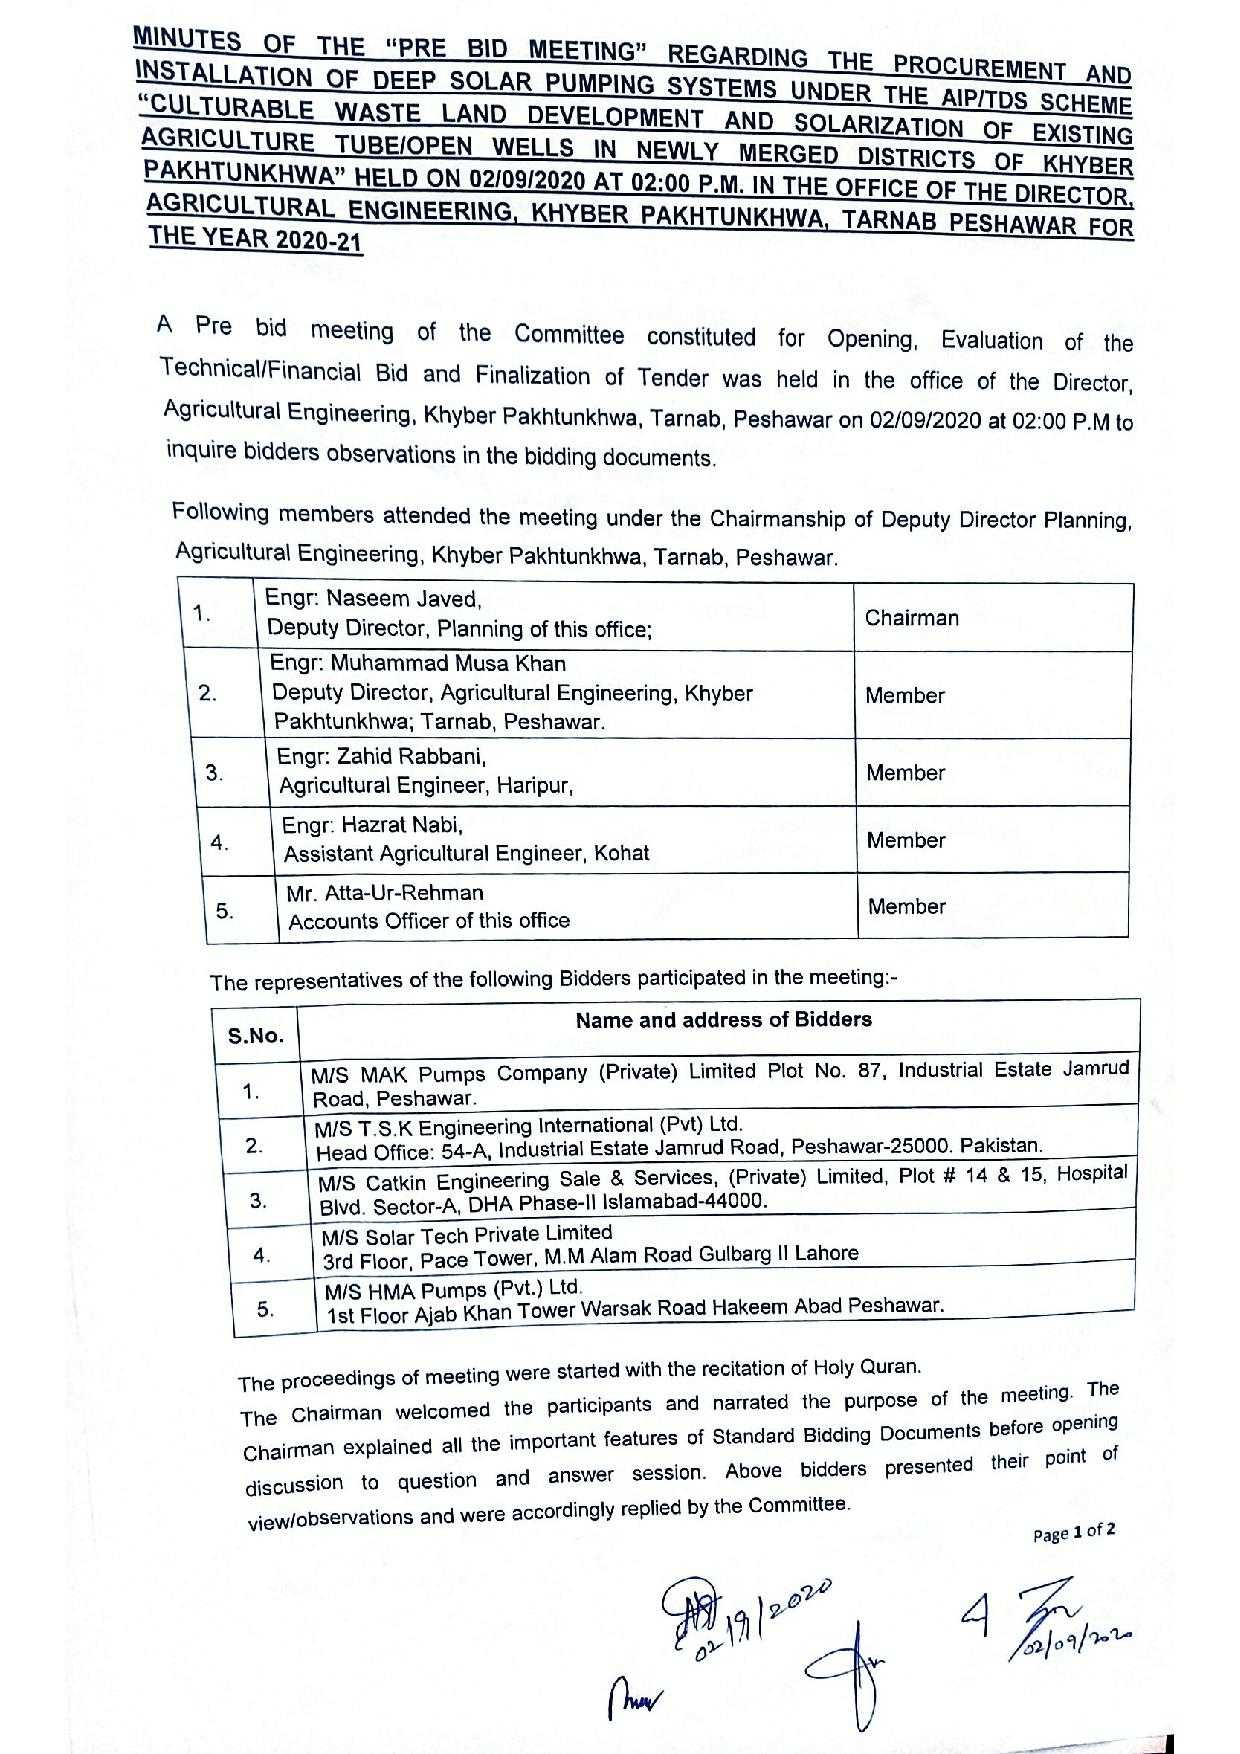 Minutes_of_the_Pre-Bid_Meeting_TDS_Scheme-page-002